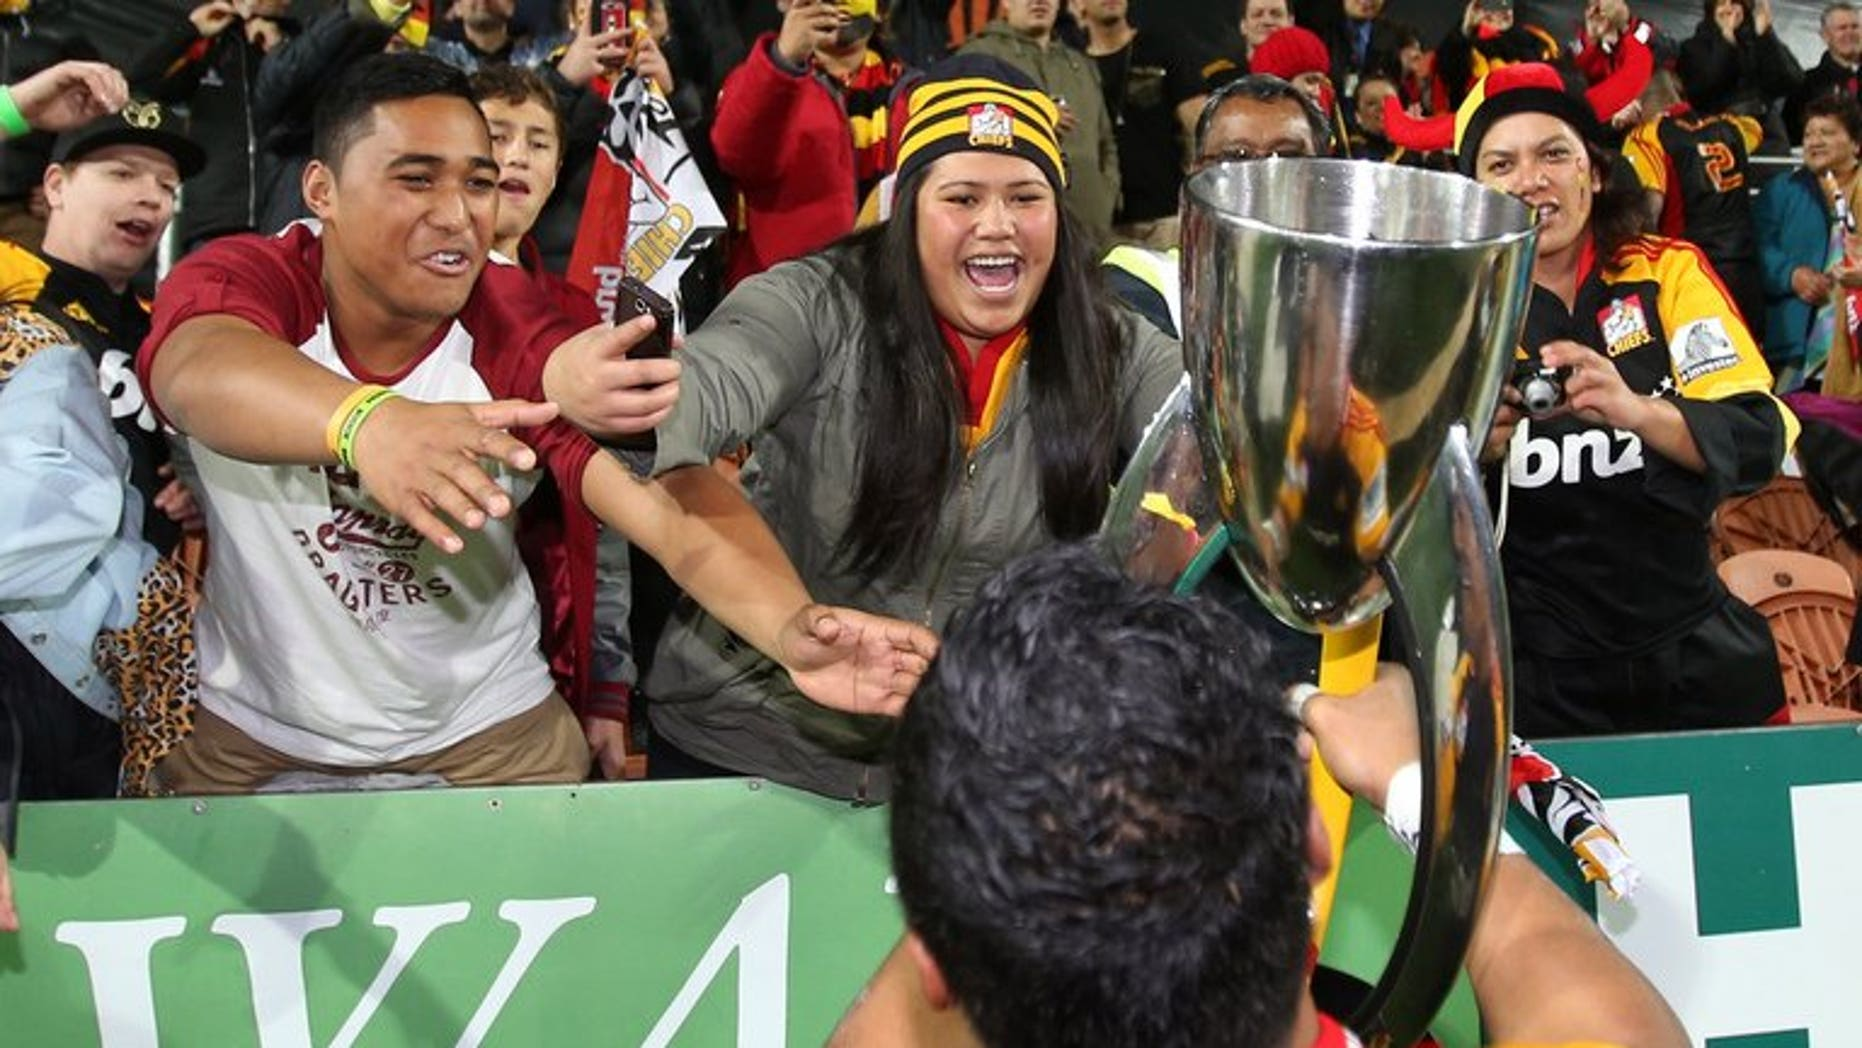 Bundee Aki of the Chiefs celebrates with the Super 15 trophy after defeating the ACT Brumbies on August 3, 2013.??Waikato Chiefs became Super Rugby champions with an attacking style.